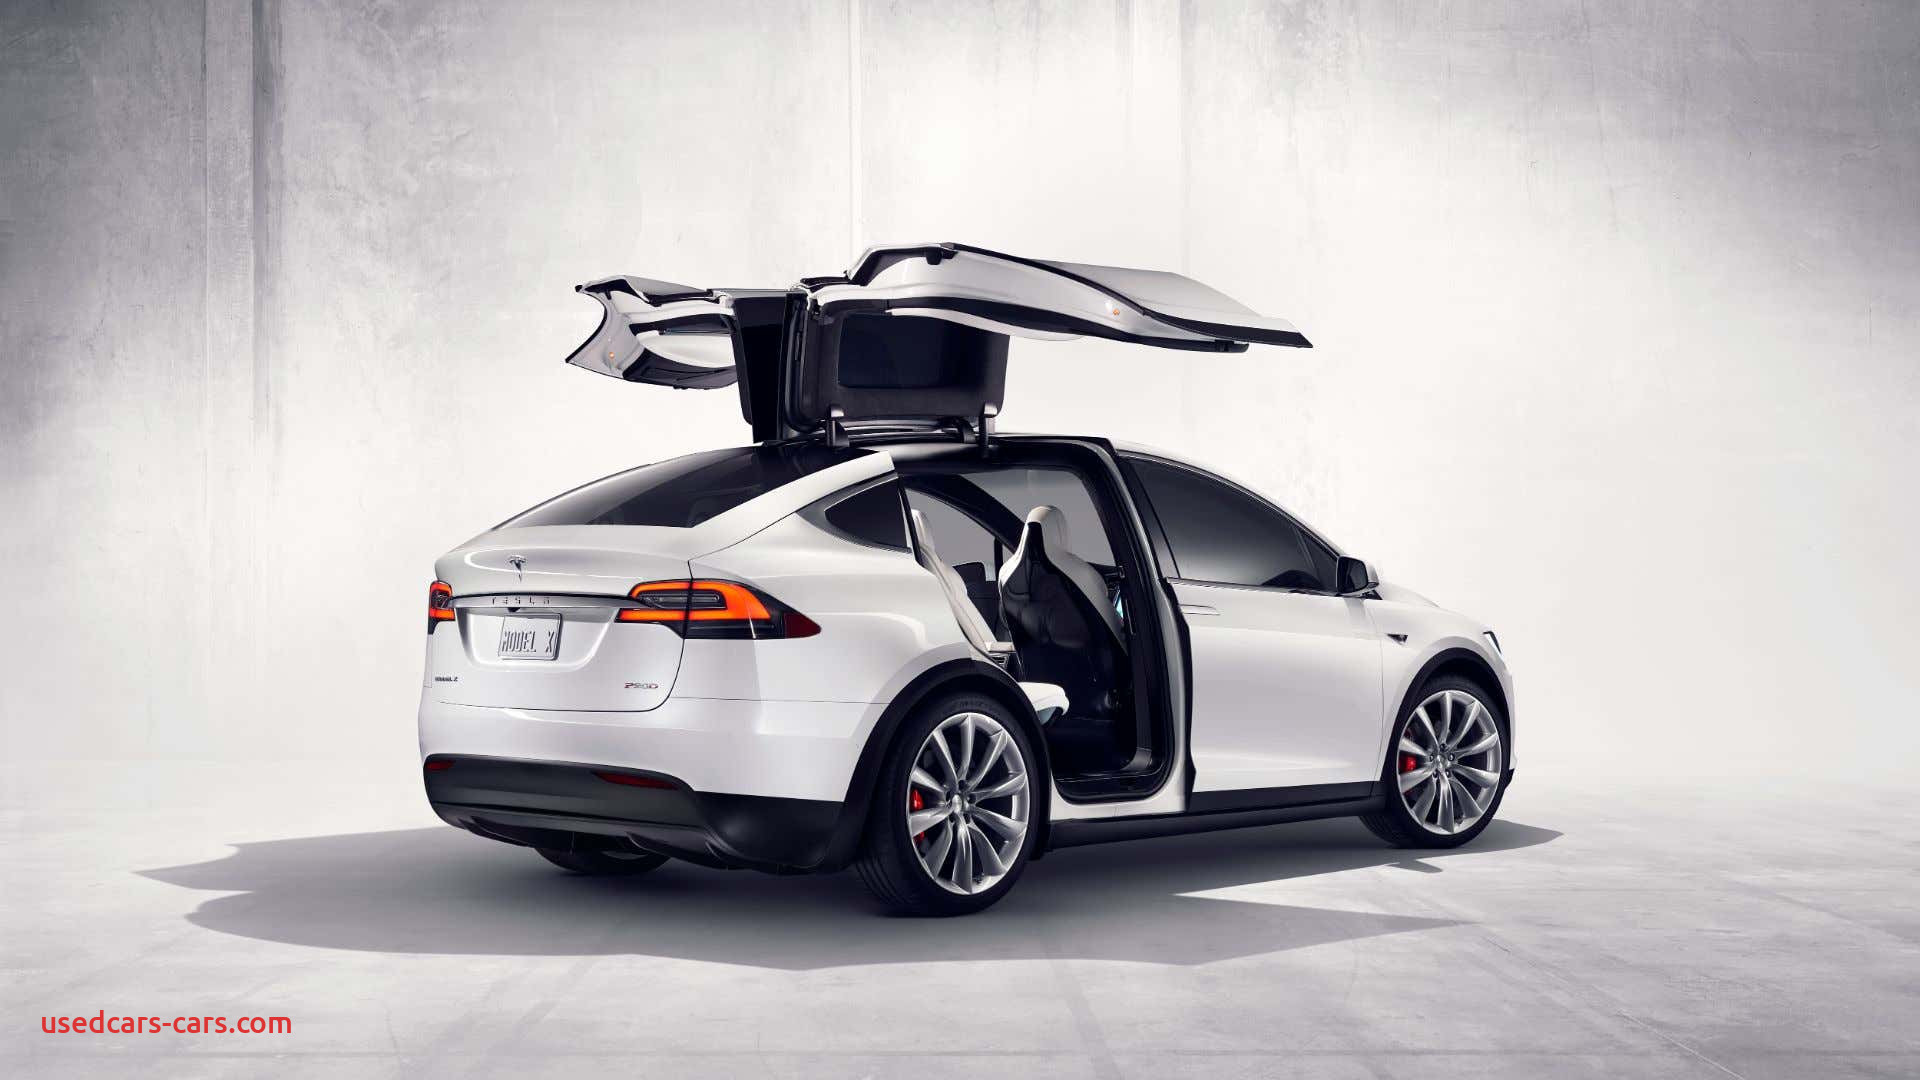 Beautiful How Long Does It Take Tesla to Charge | used cars